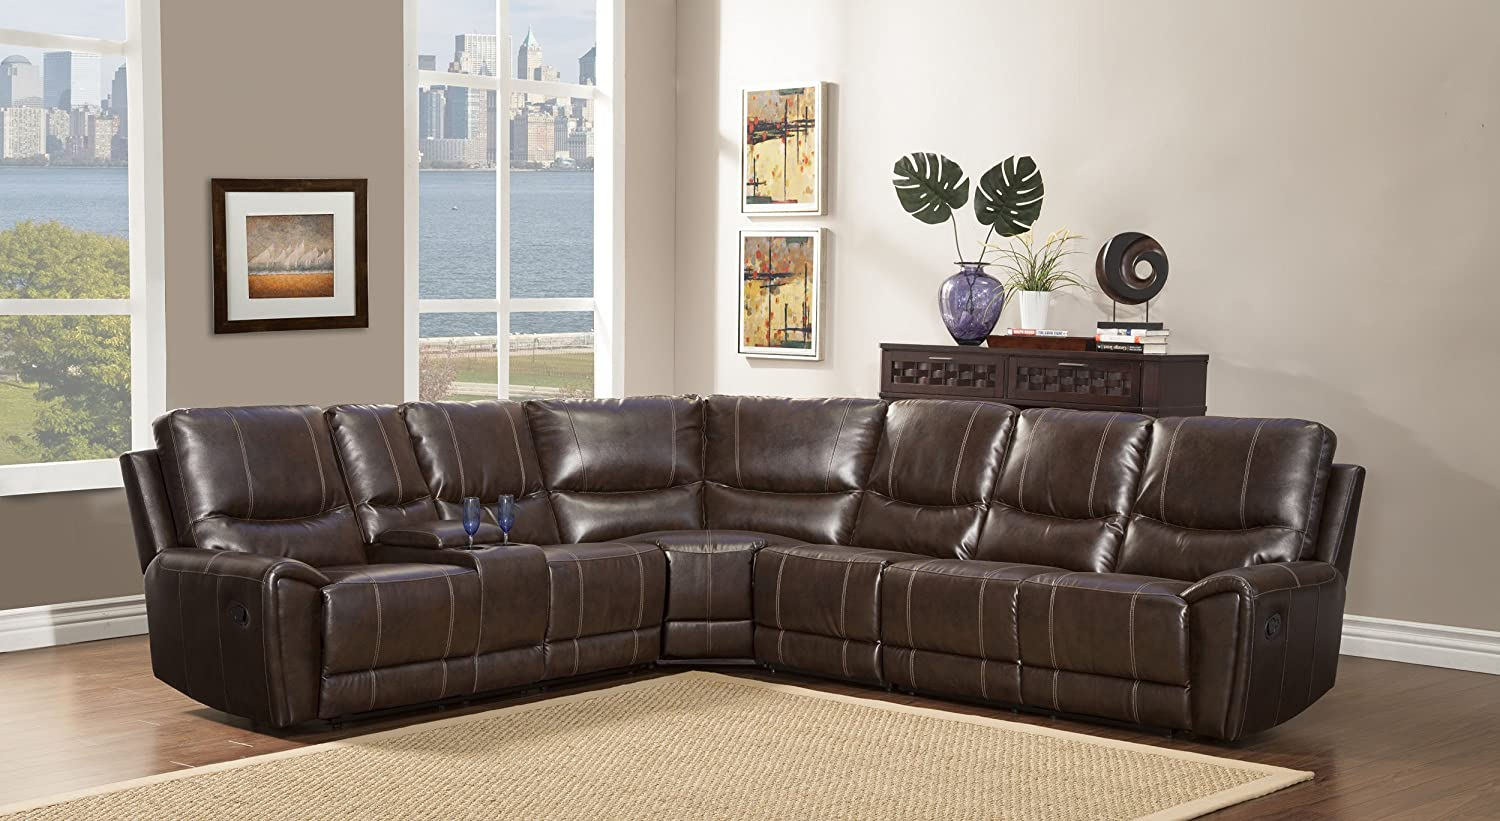 Attirant Amazon.com: Homelegance 4 Piece Bonded Leather Sectional Reclining Sofa  With Cup Holder Console, Brown: Kitchen U0026 Dining